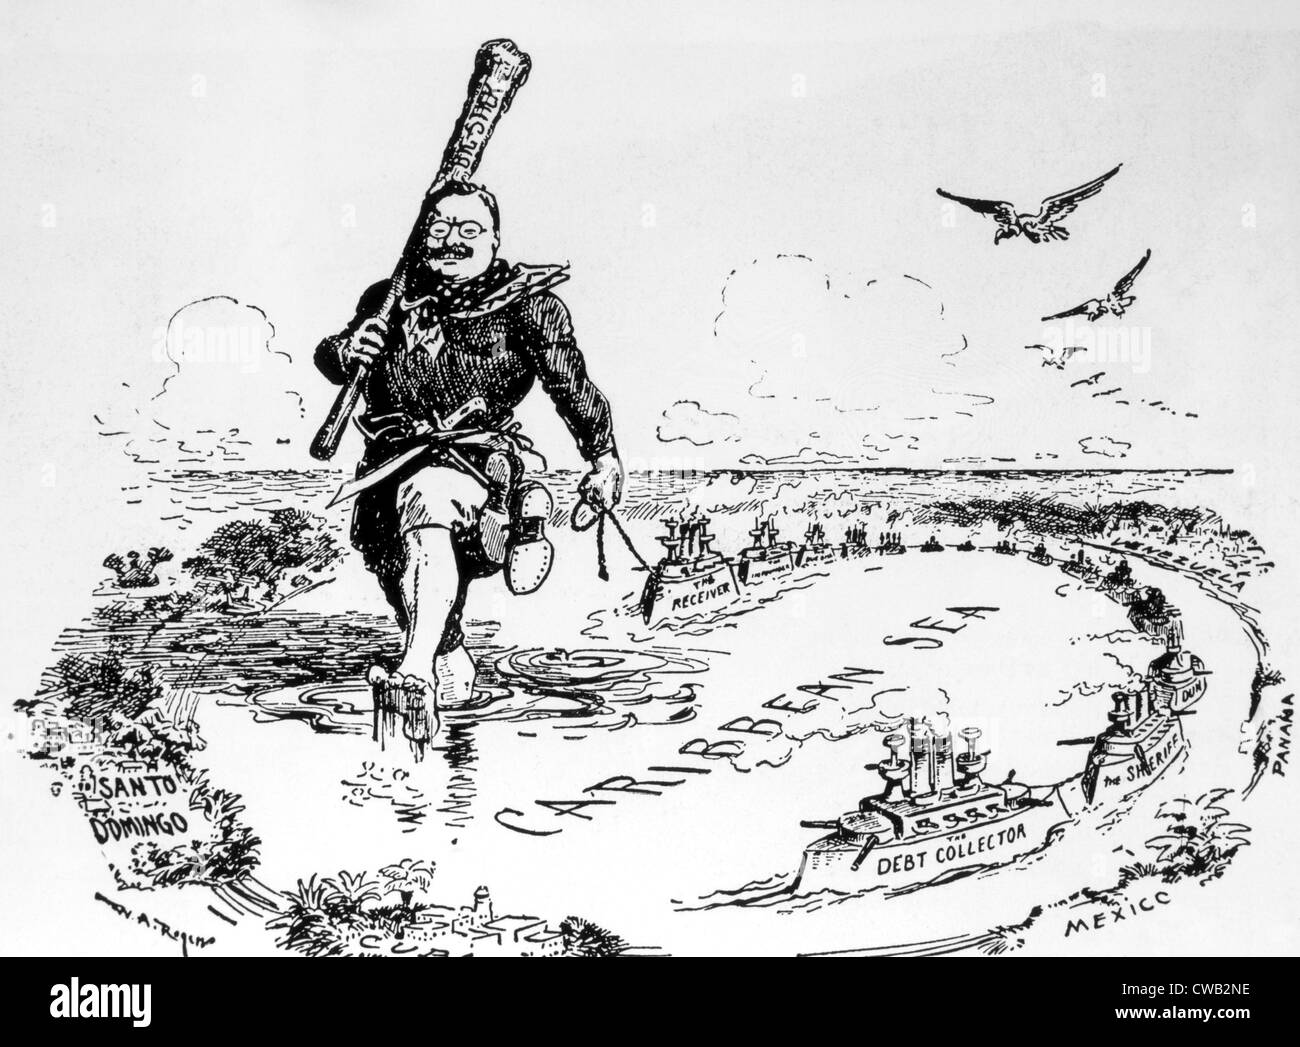 President Theodore Roosevelt patrolling the Caribbean with his 'Big Stick' in a political cartoon, 1904 - Stock Image